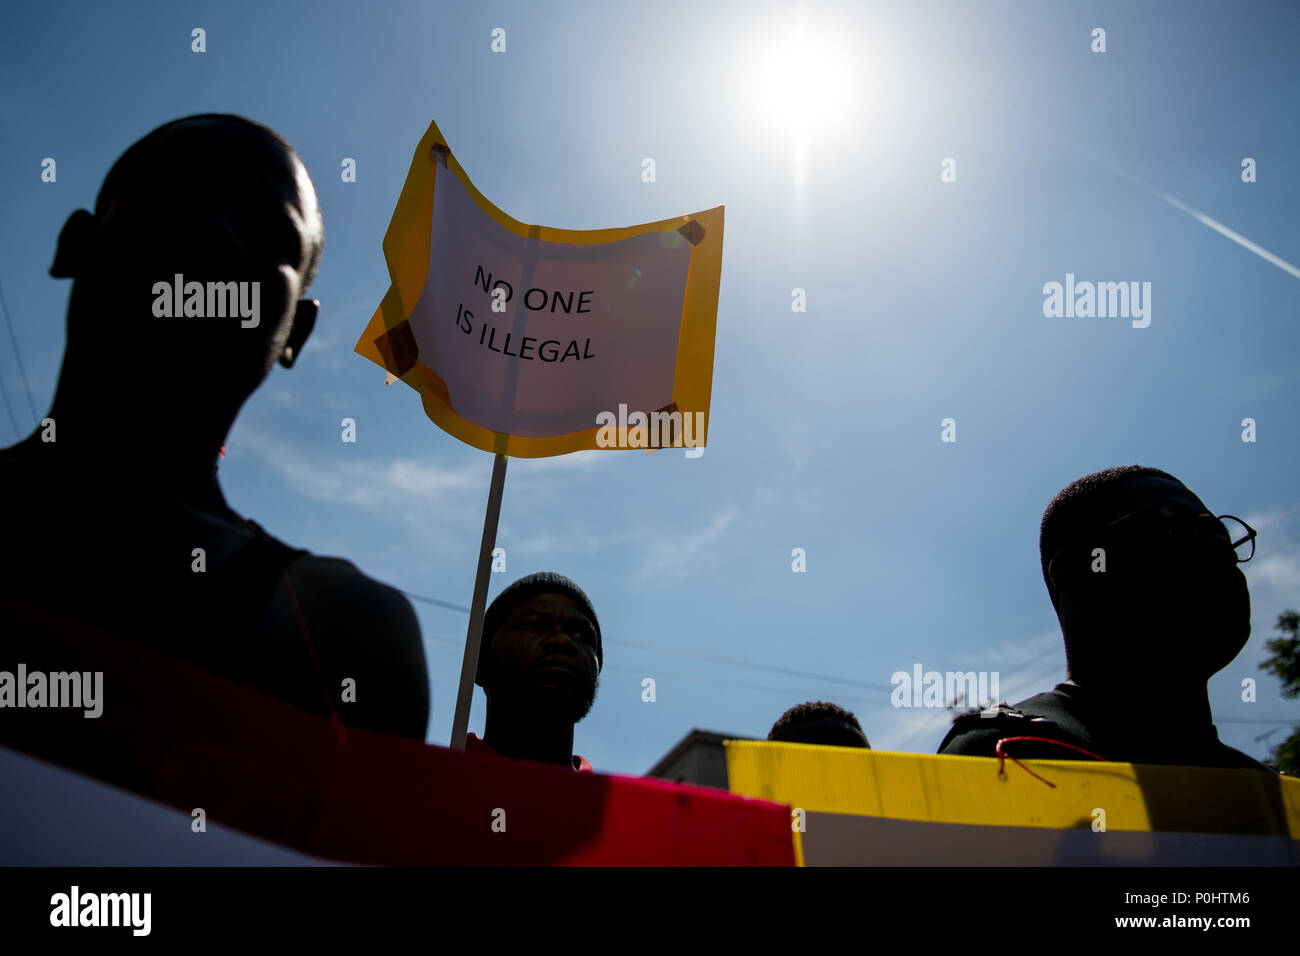 Milan, Italy - 9 June 2018: A man holds a placard  reading 'No one is illegal' during an anti-racist against the killing of Soumaila Sacko, a  29 years old Malian farm worker migrant, murdered in a shooting last Sunday in the village of San Ferdinando in the southern Italian region of Calabria. - Stock Image